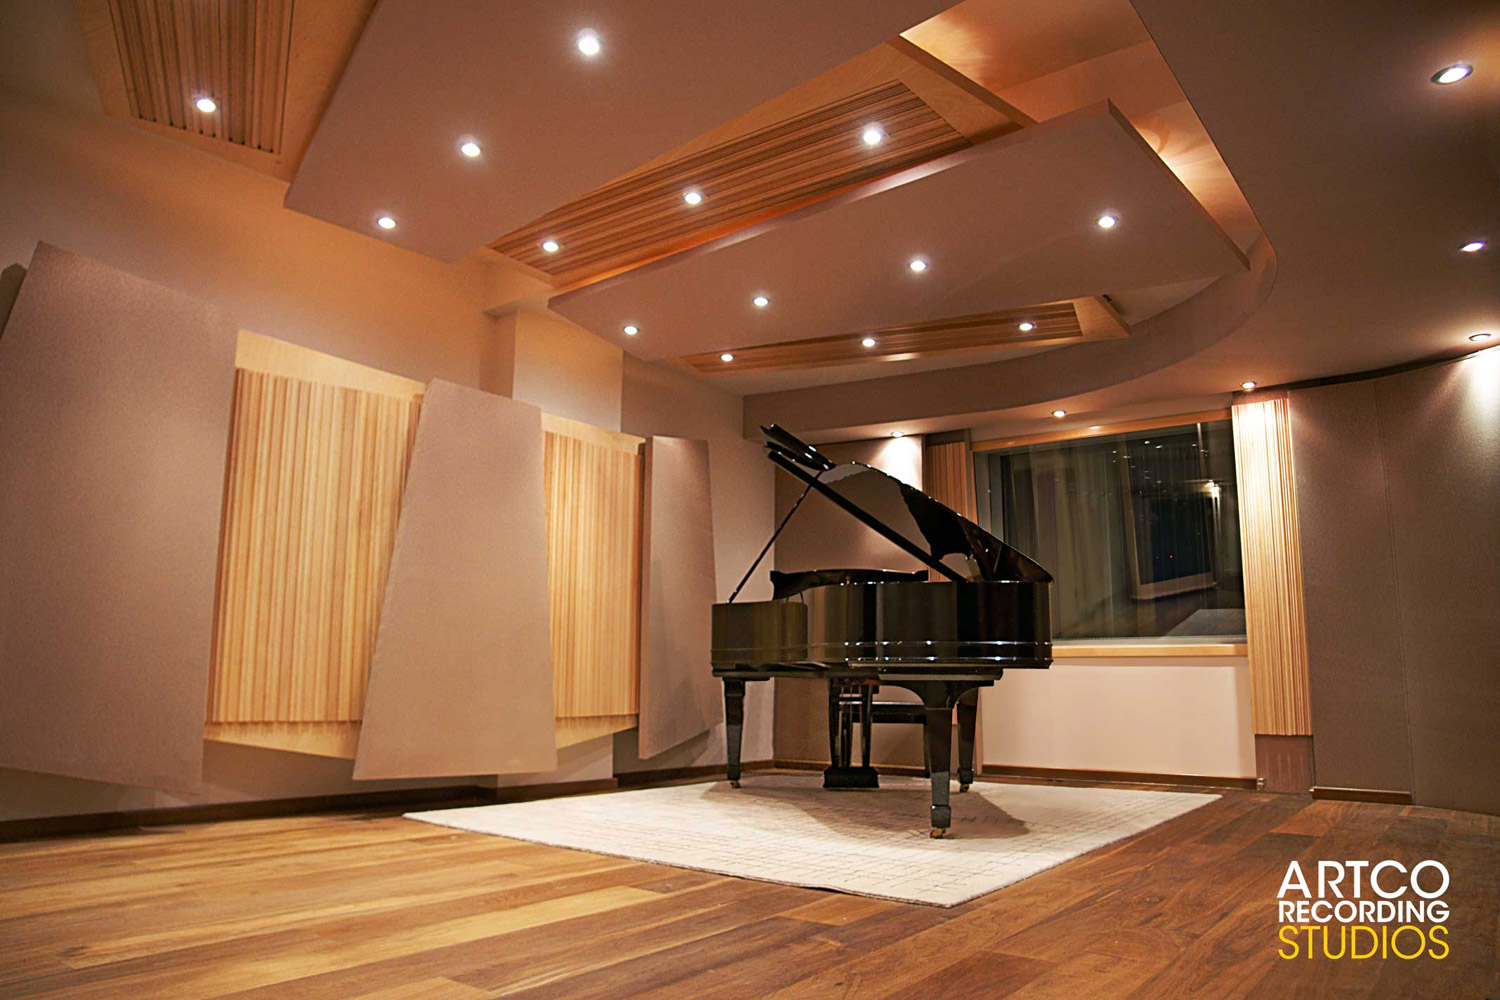 Amazing Artco Recording Studios Wsdg Largest Home Design Picture Inspirations Pitcheantrous